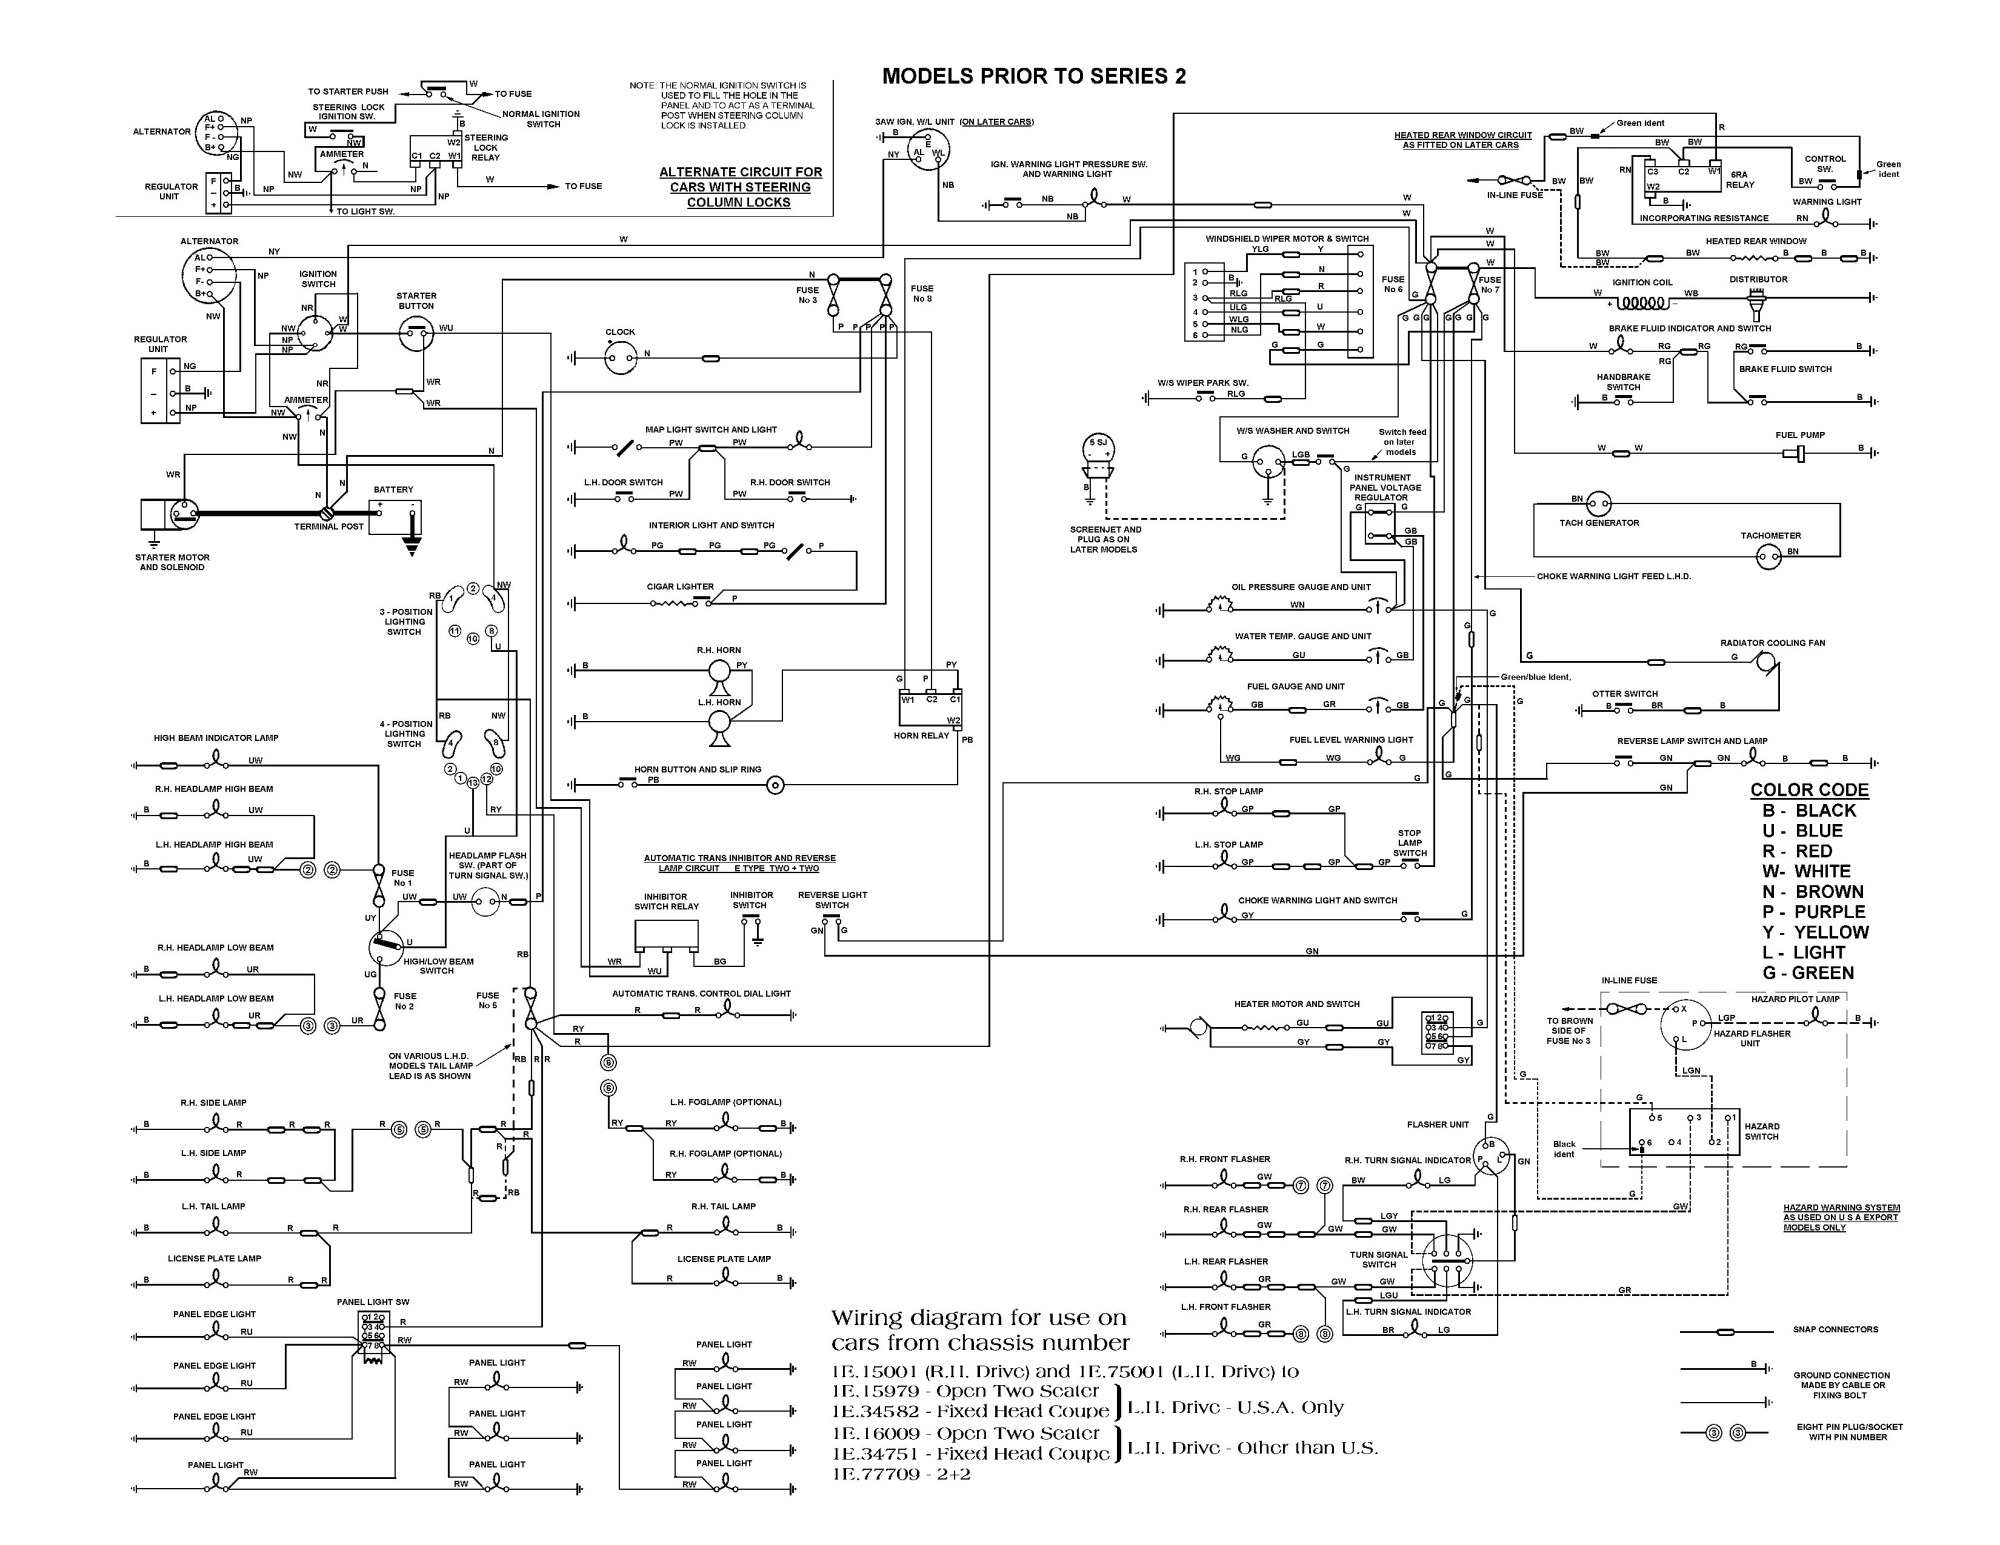 hight resolution of wiring diagram software open source wiring diagram software open source collection wiring diagram software open